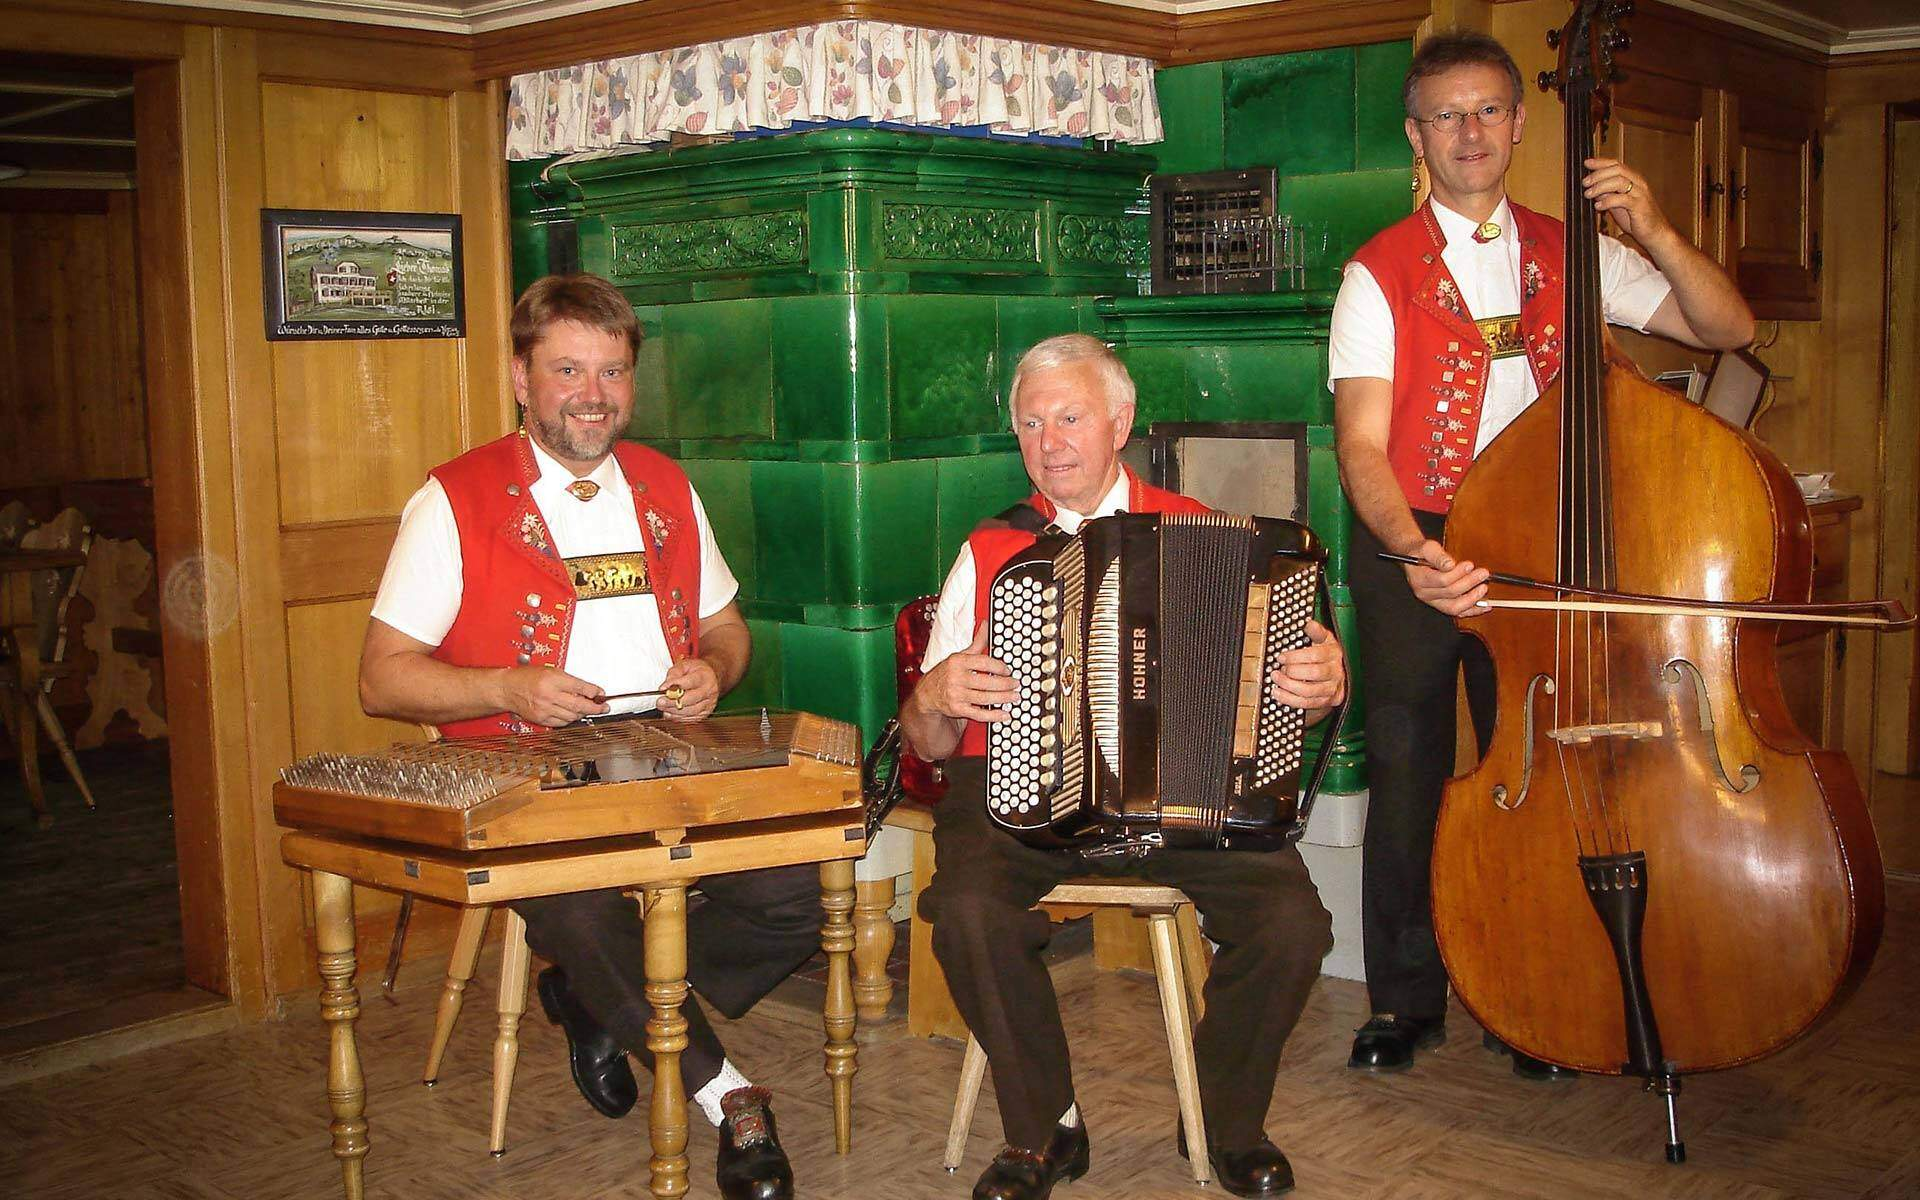 Appenzeller music at the Bären